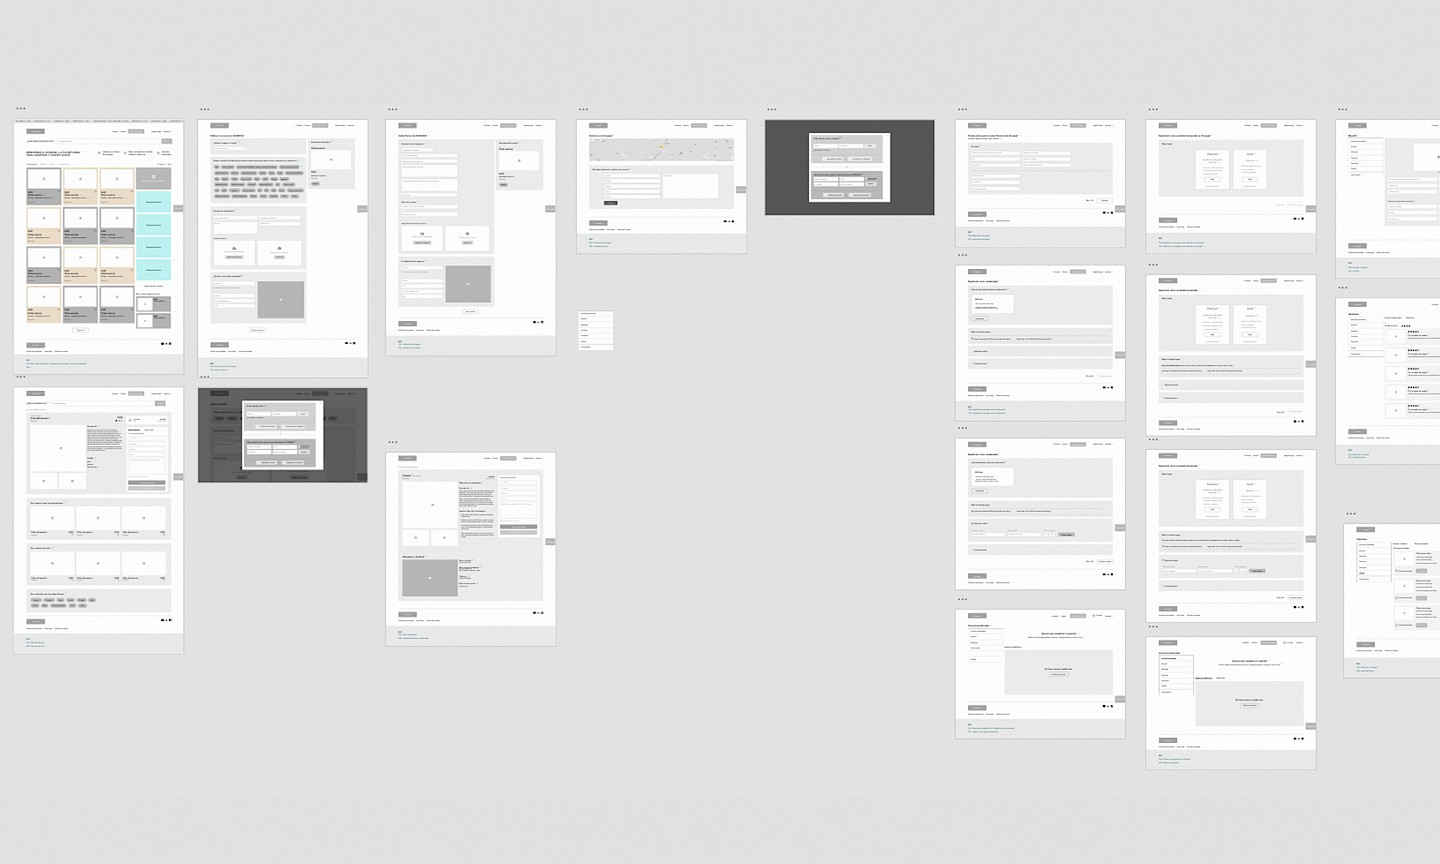 branding move digital webapp wireframe scrap general industrial scrapad branding